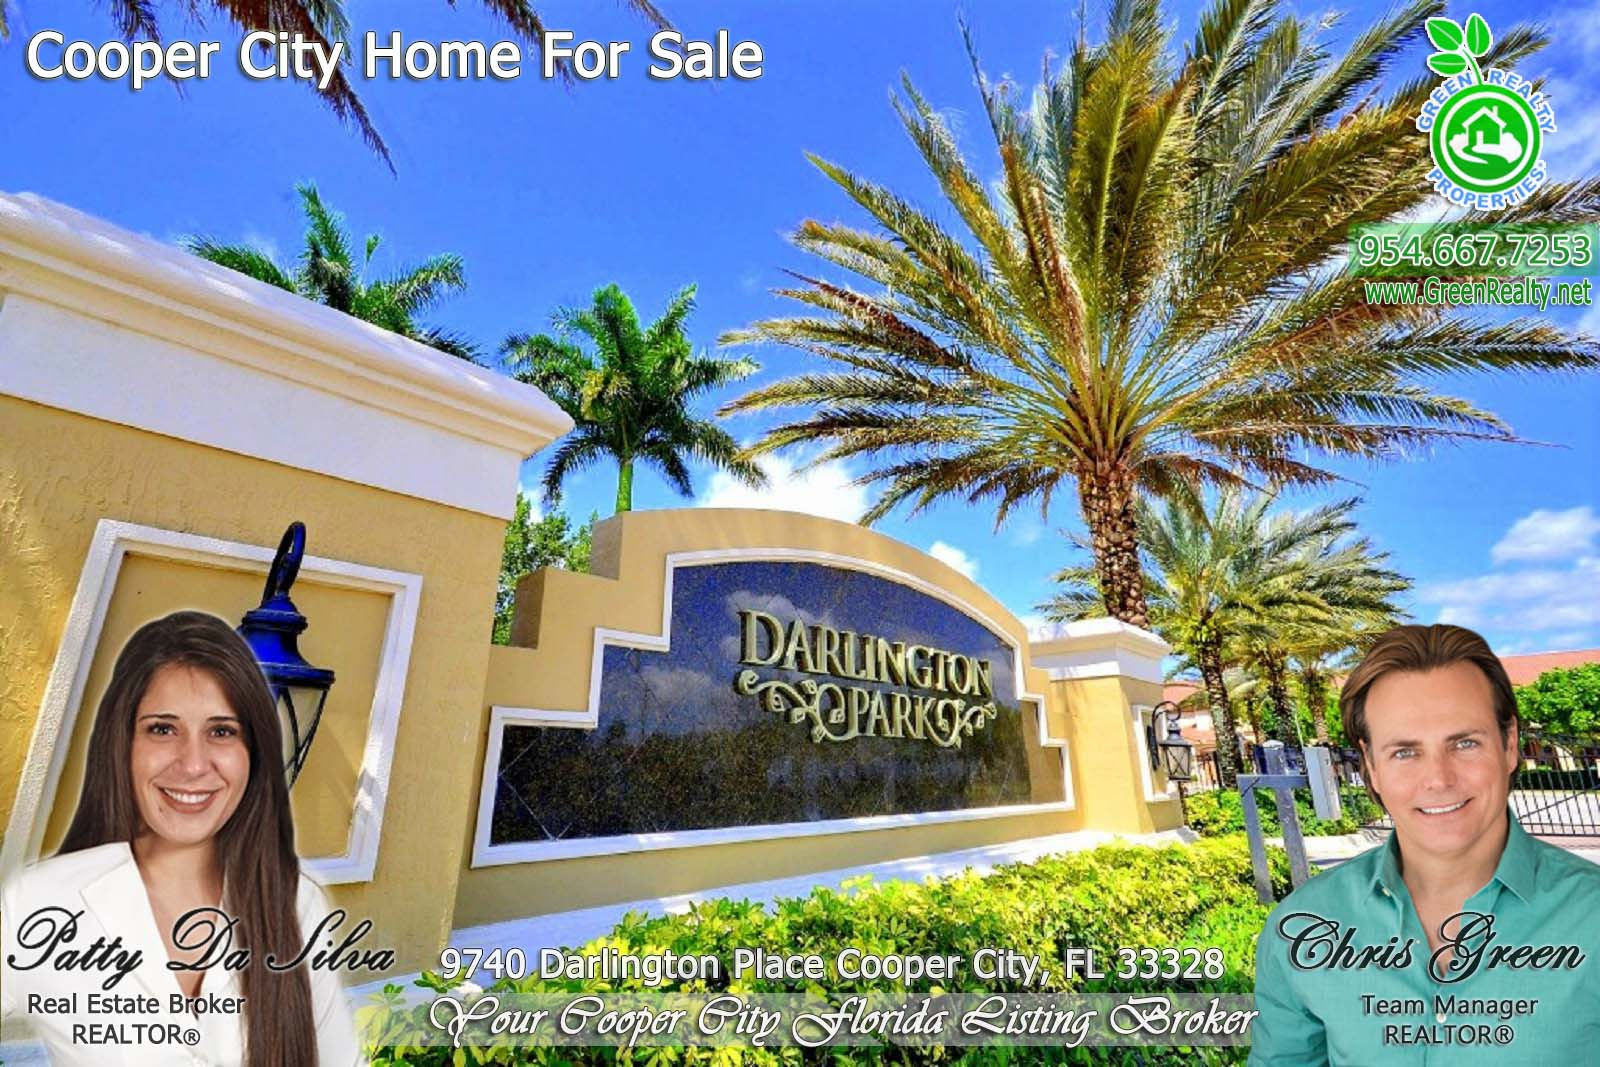 31 Darlington Park - Cooper City Florida Patty Da Silva REALTOR (1)